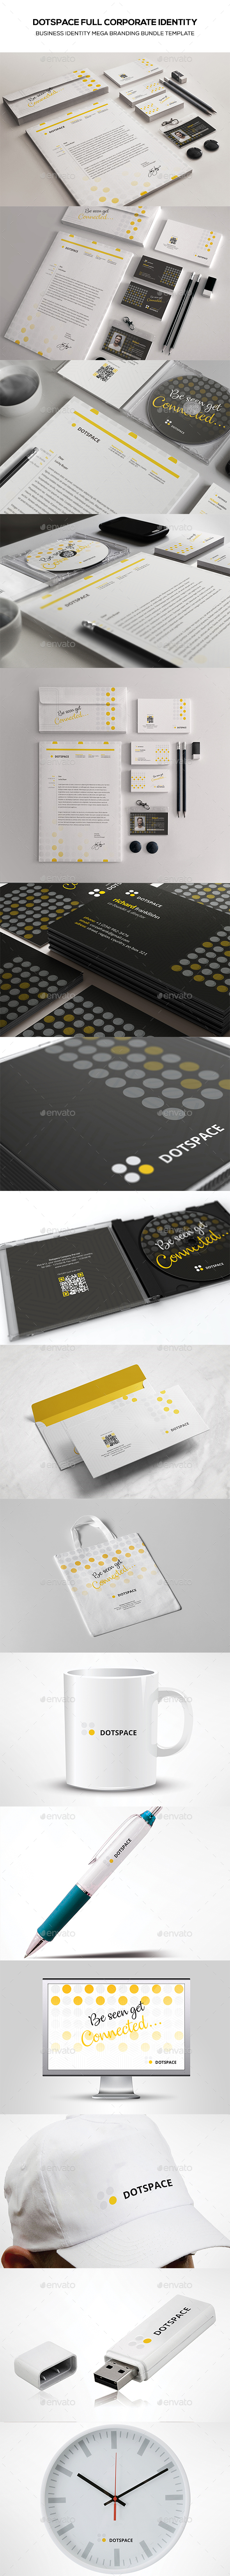 Dotspace Full Corporate Identity - Stationery Print Templates